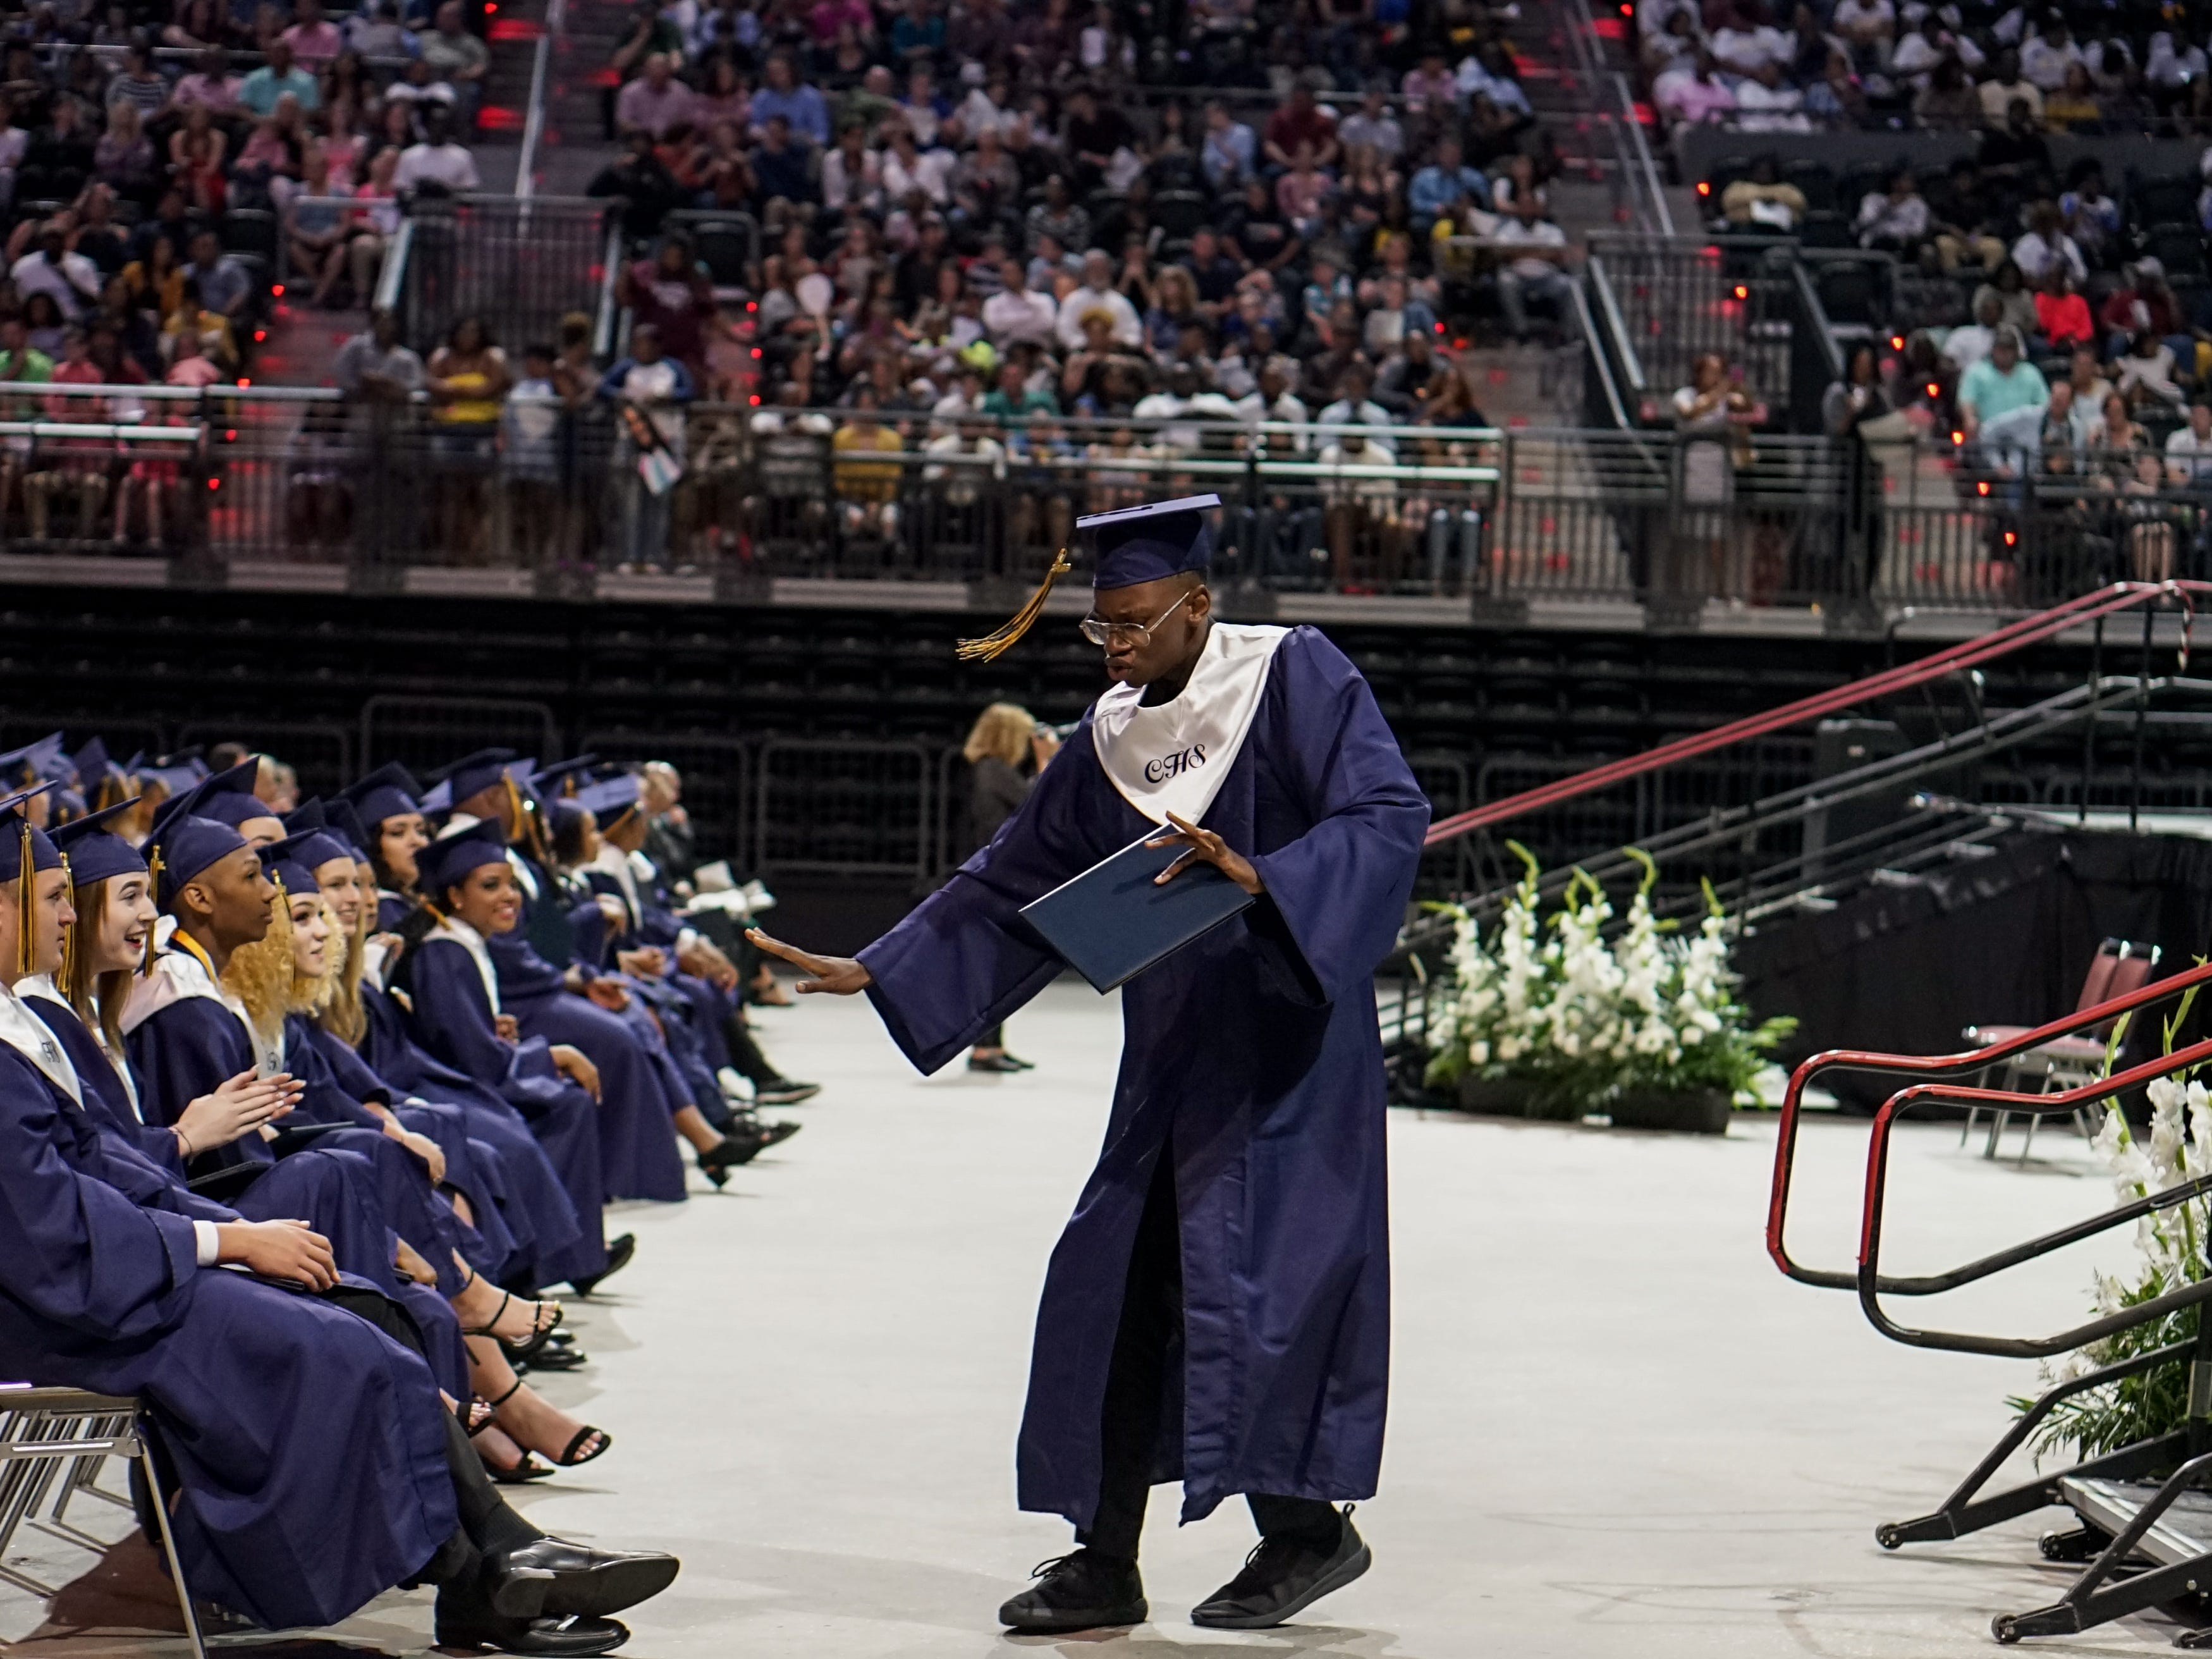 Carencro High School Graduation took place Saturday, May 11th at the Cajundome.